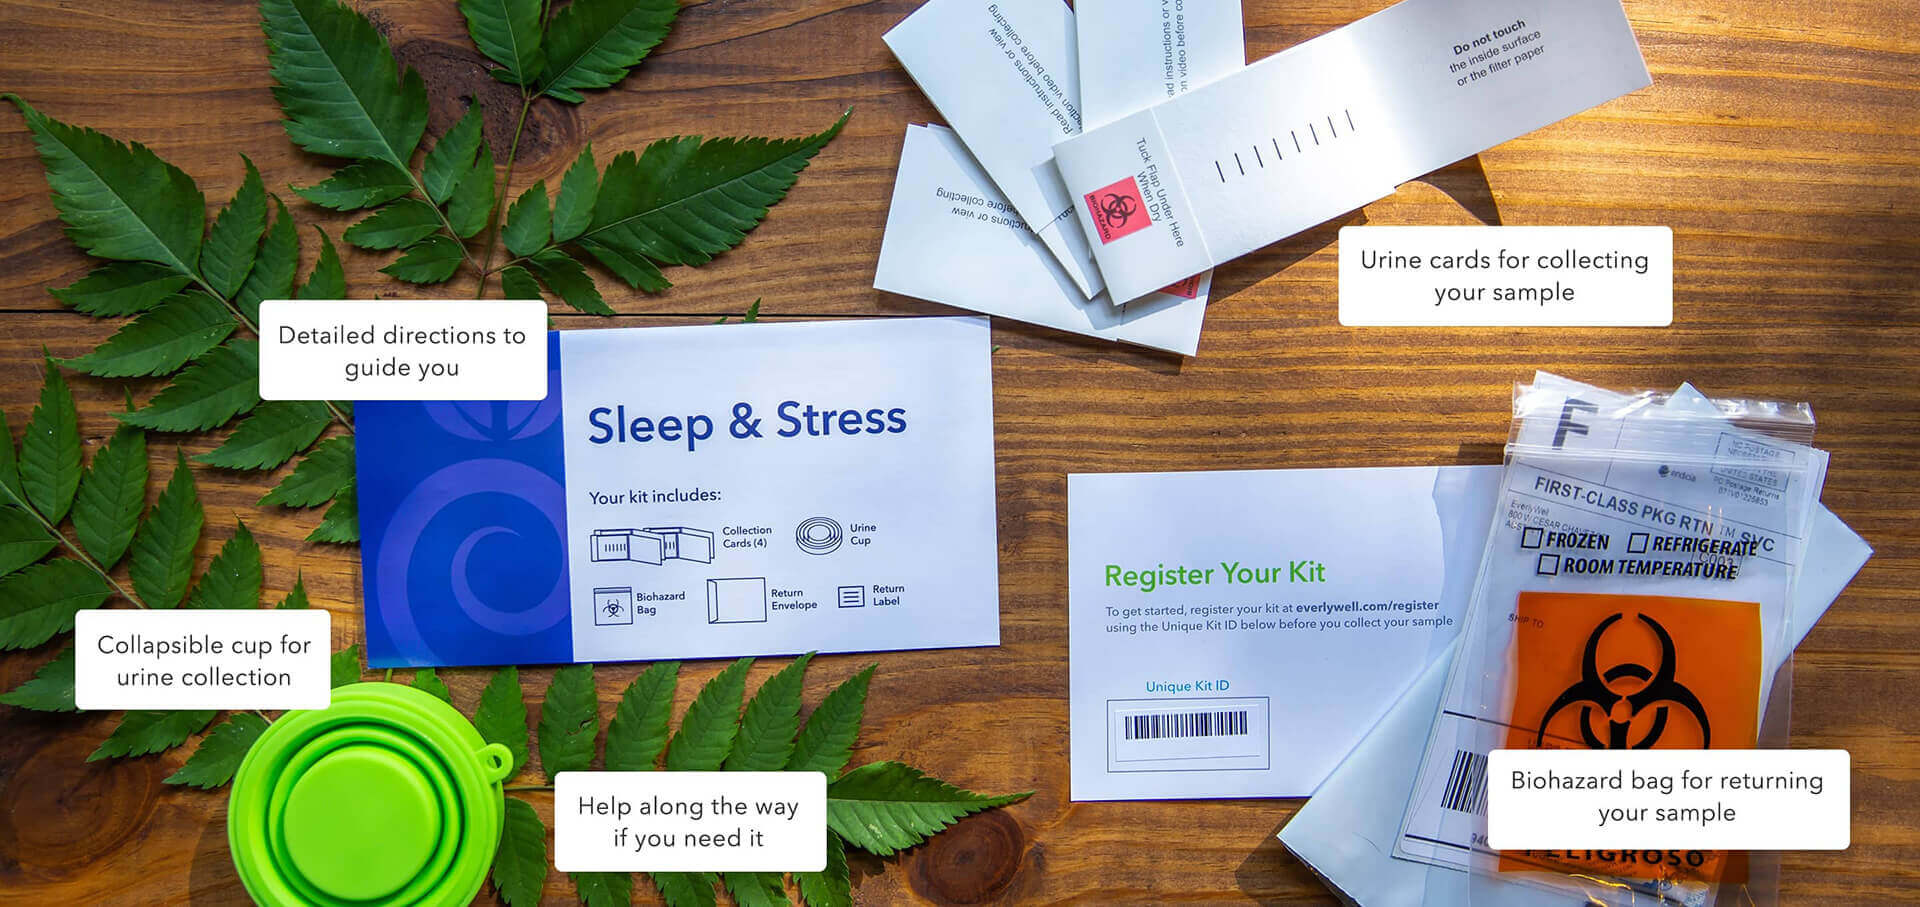 At-home Sleep and Stress Test kit components